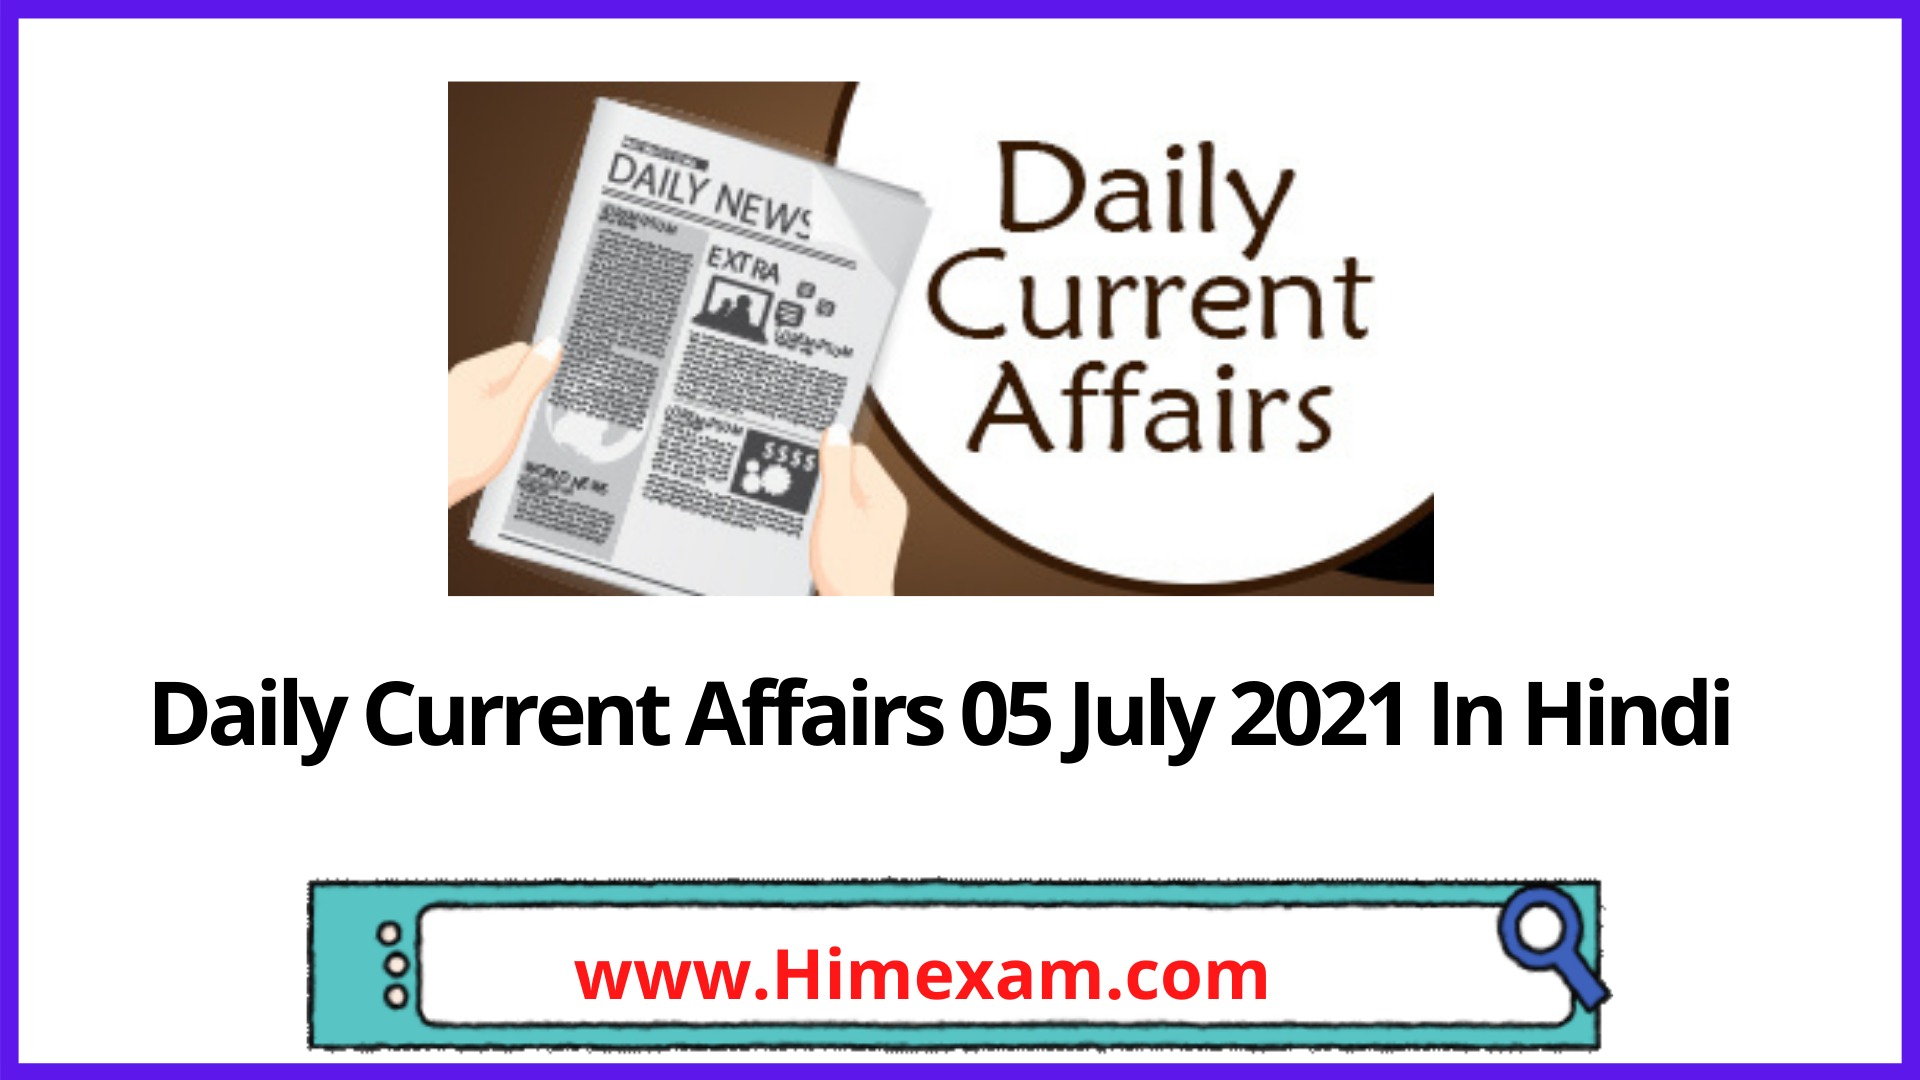 Daily Current Affairs 05 July 2021 In Hindi